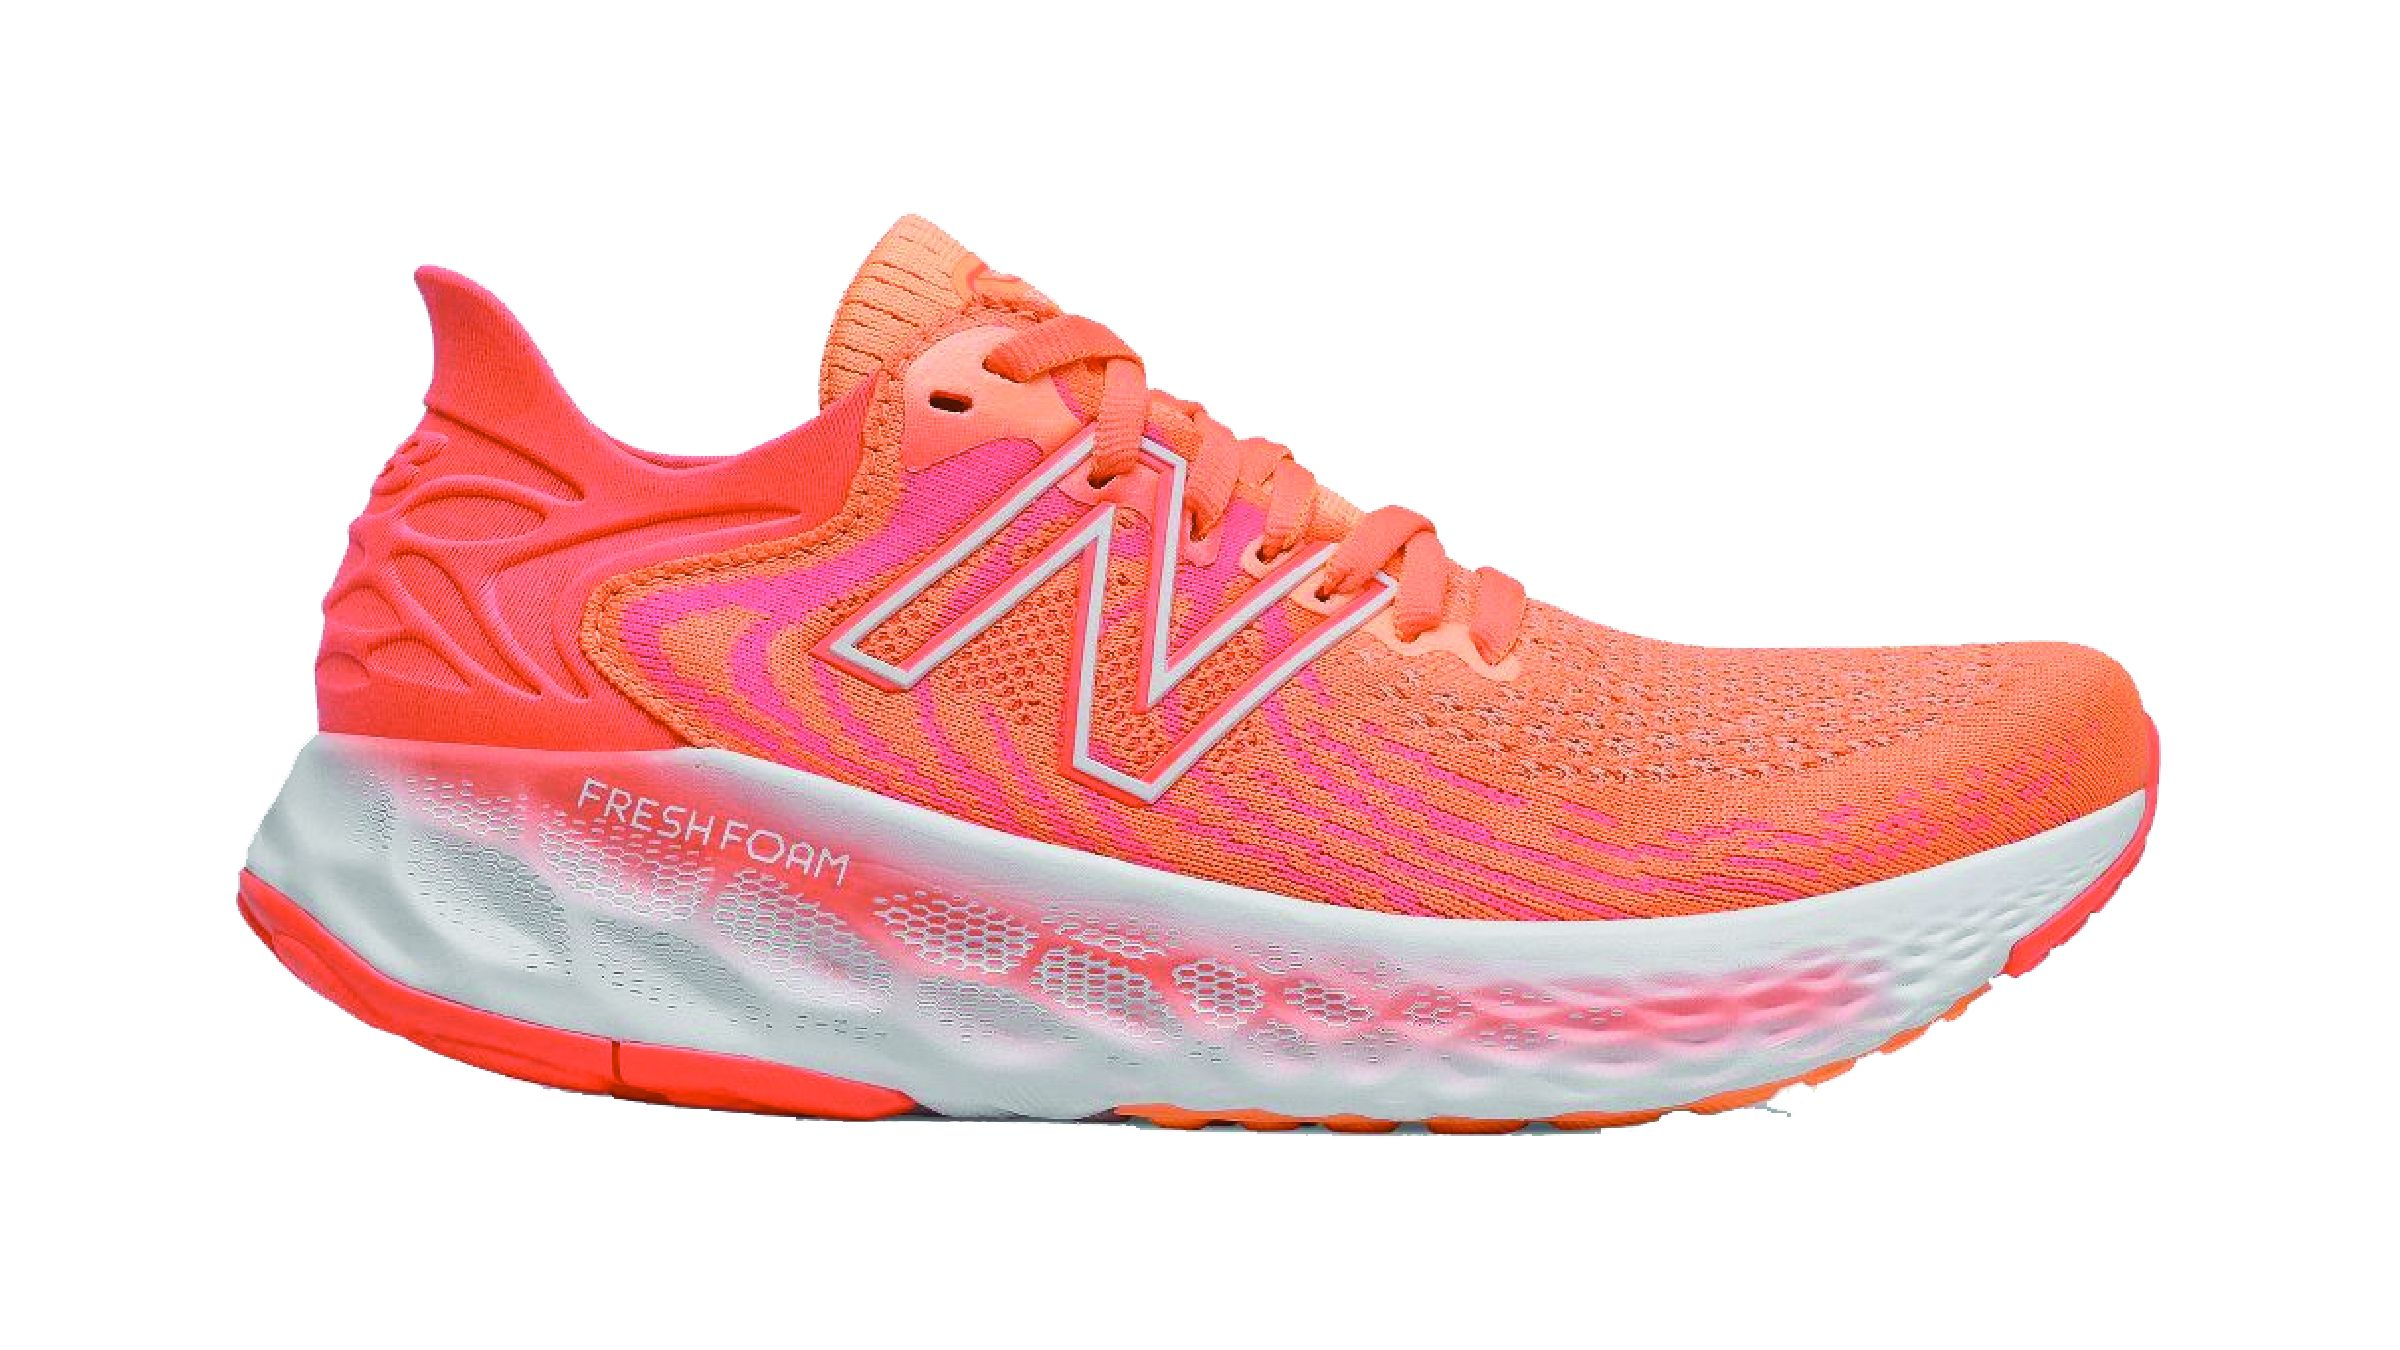 Orange and pink New Balance1080 v11 running shoe